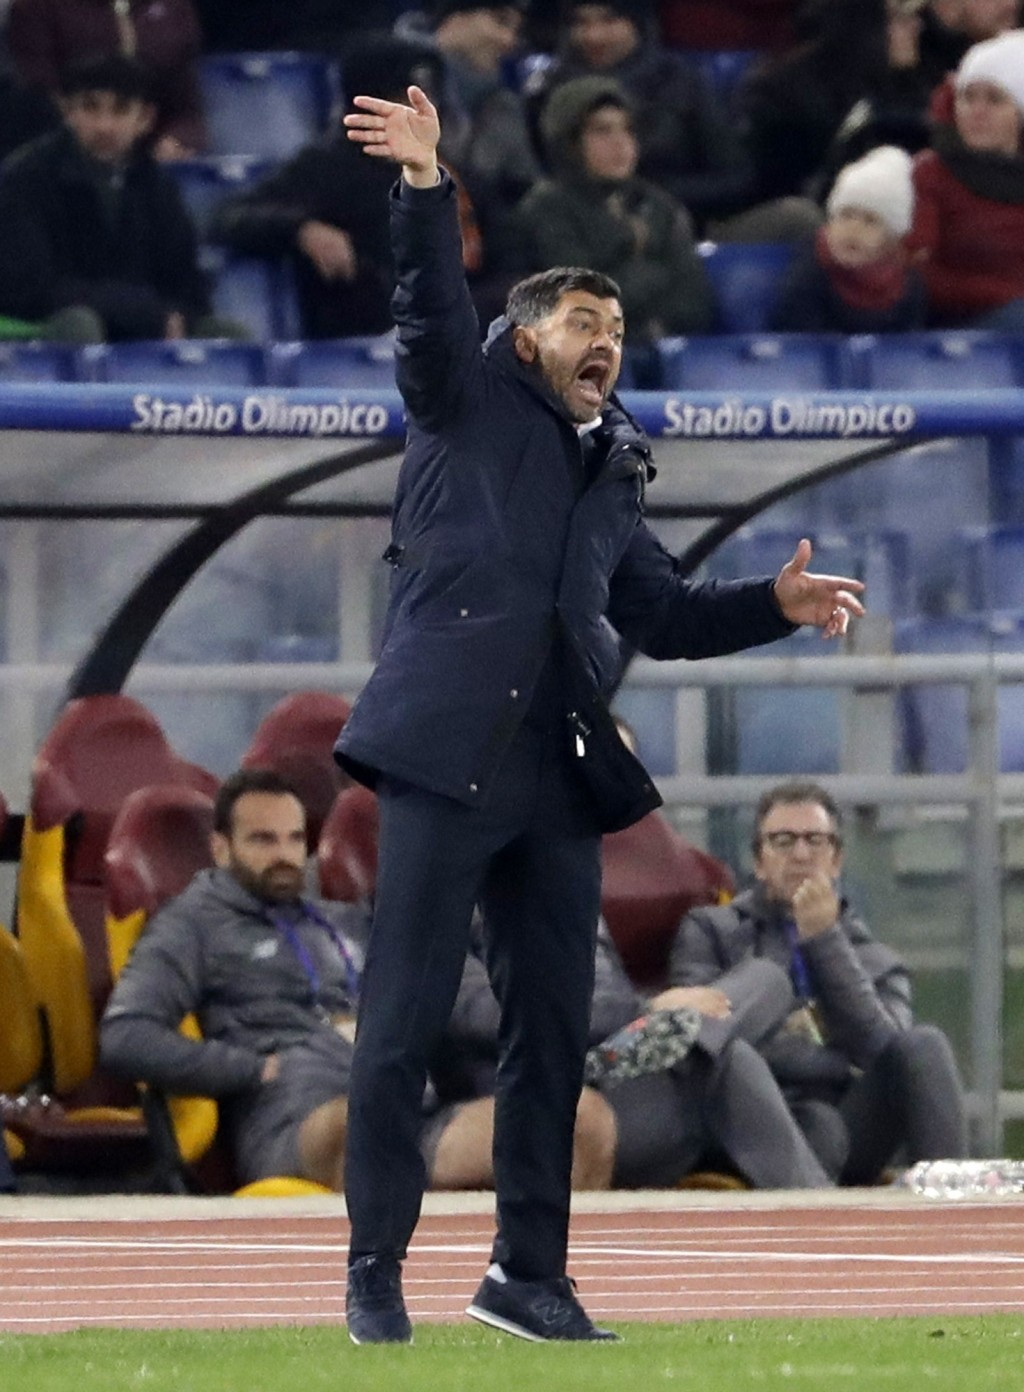 Porto coach Sergio Conceicao gives instructions to his players during a Champions League round of 16 first leg soccer match between Roma and Porto, at